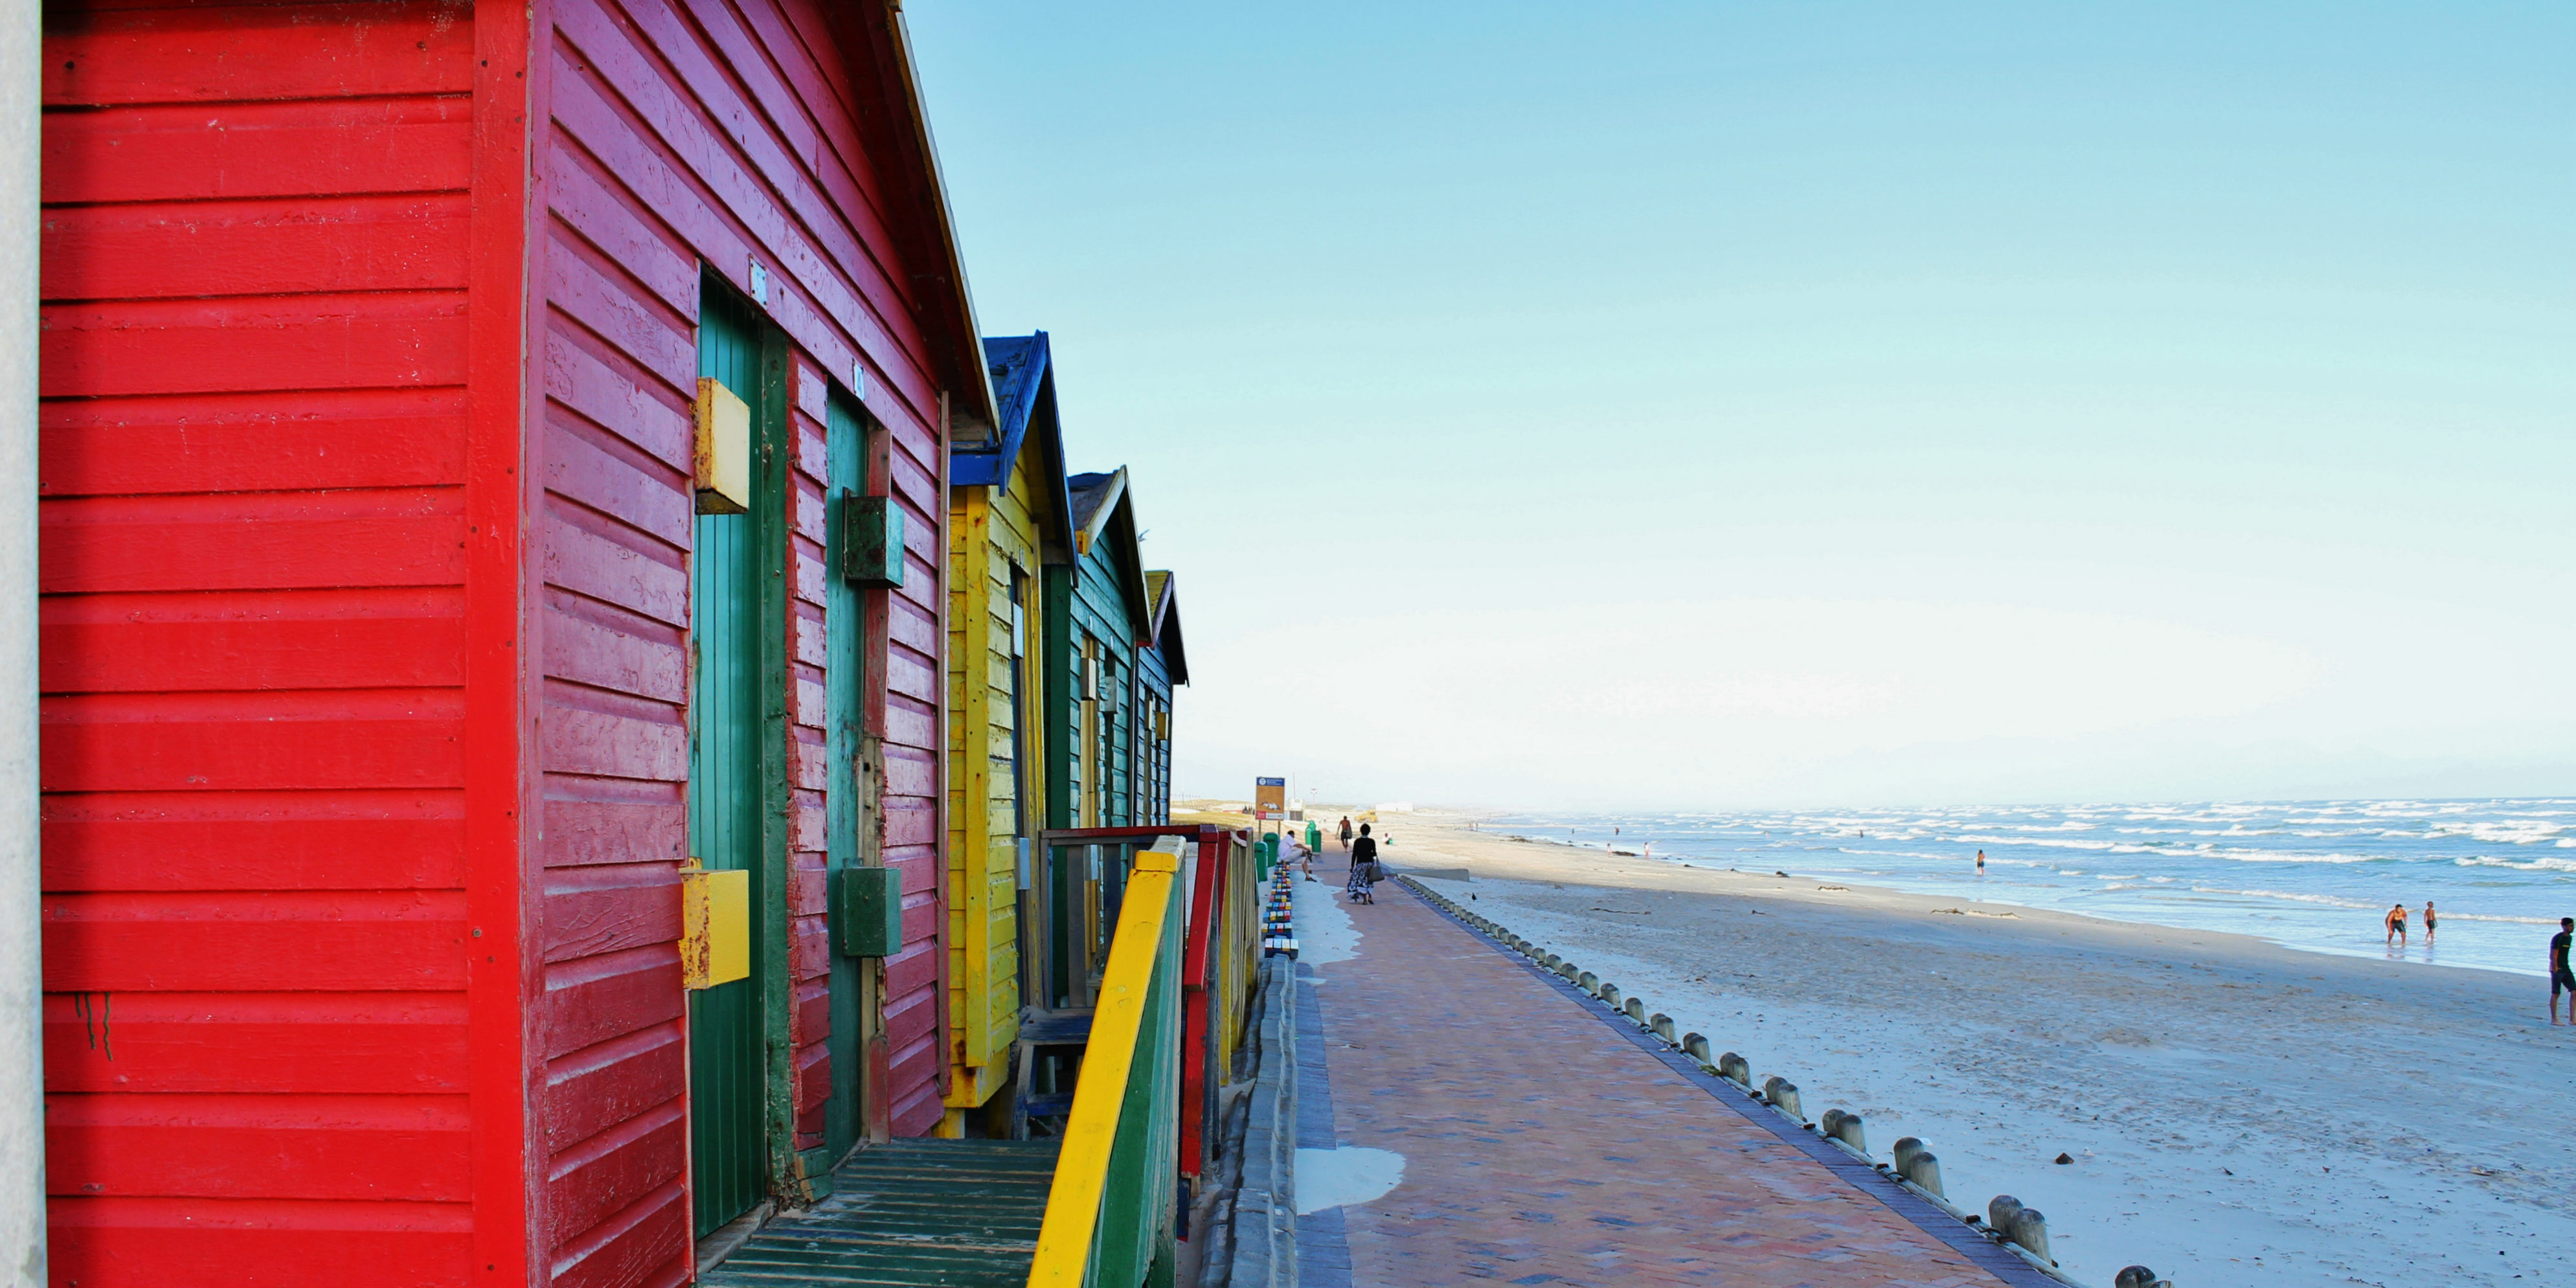 While volunteering in Cape Town, participants can visit Muizenberg Beach, with tons of things to see and do.